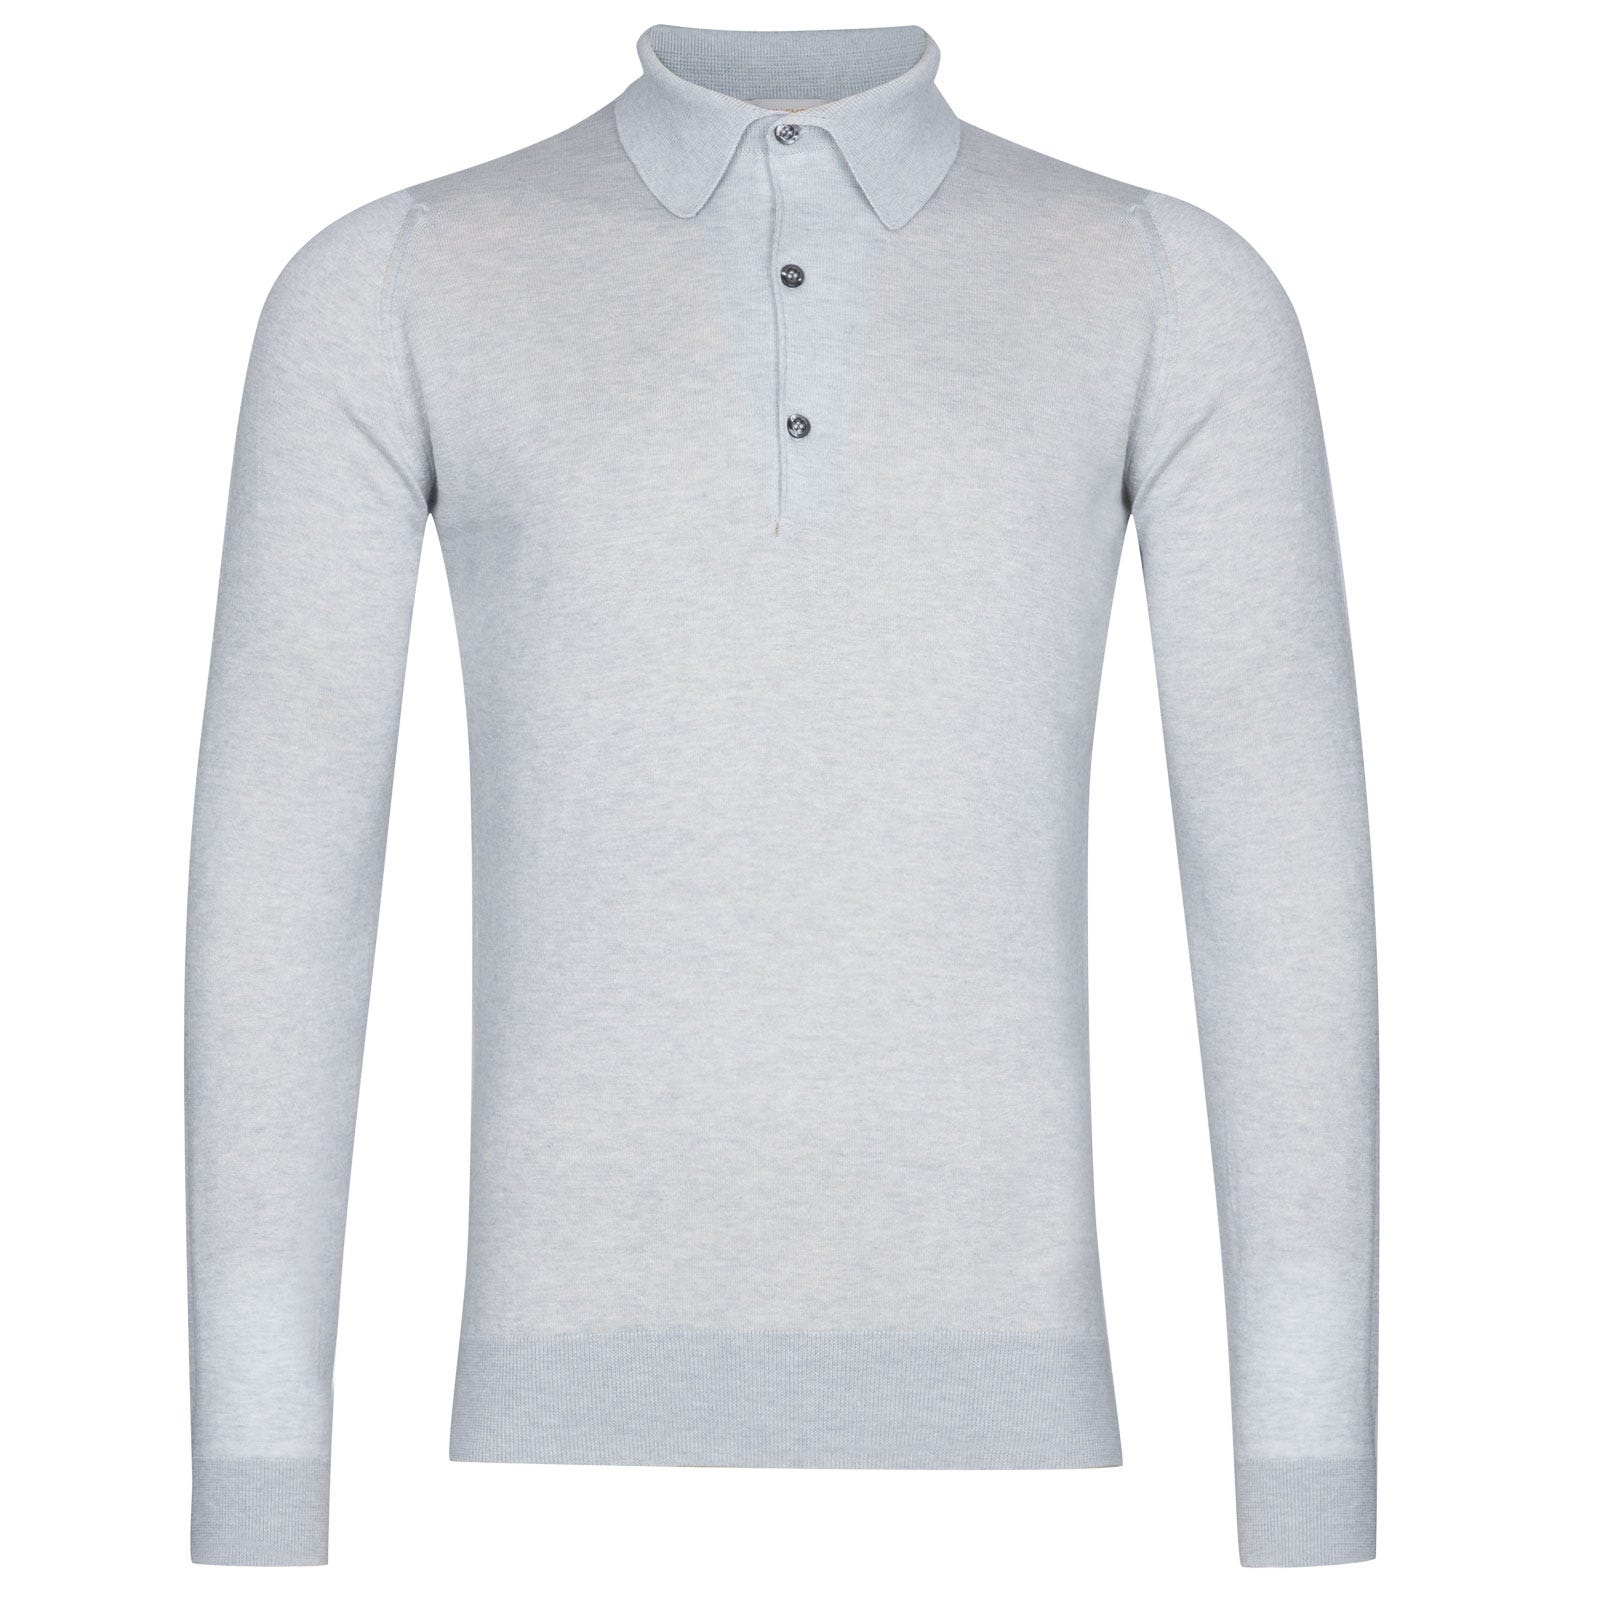 John Smedley Lanlay Sea Island Cotton and Cashmere Shirt in Silver-L